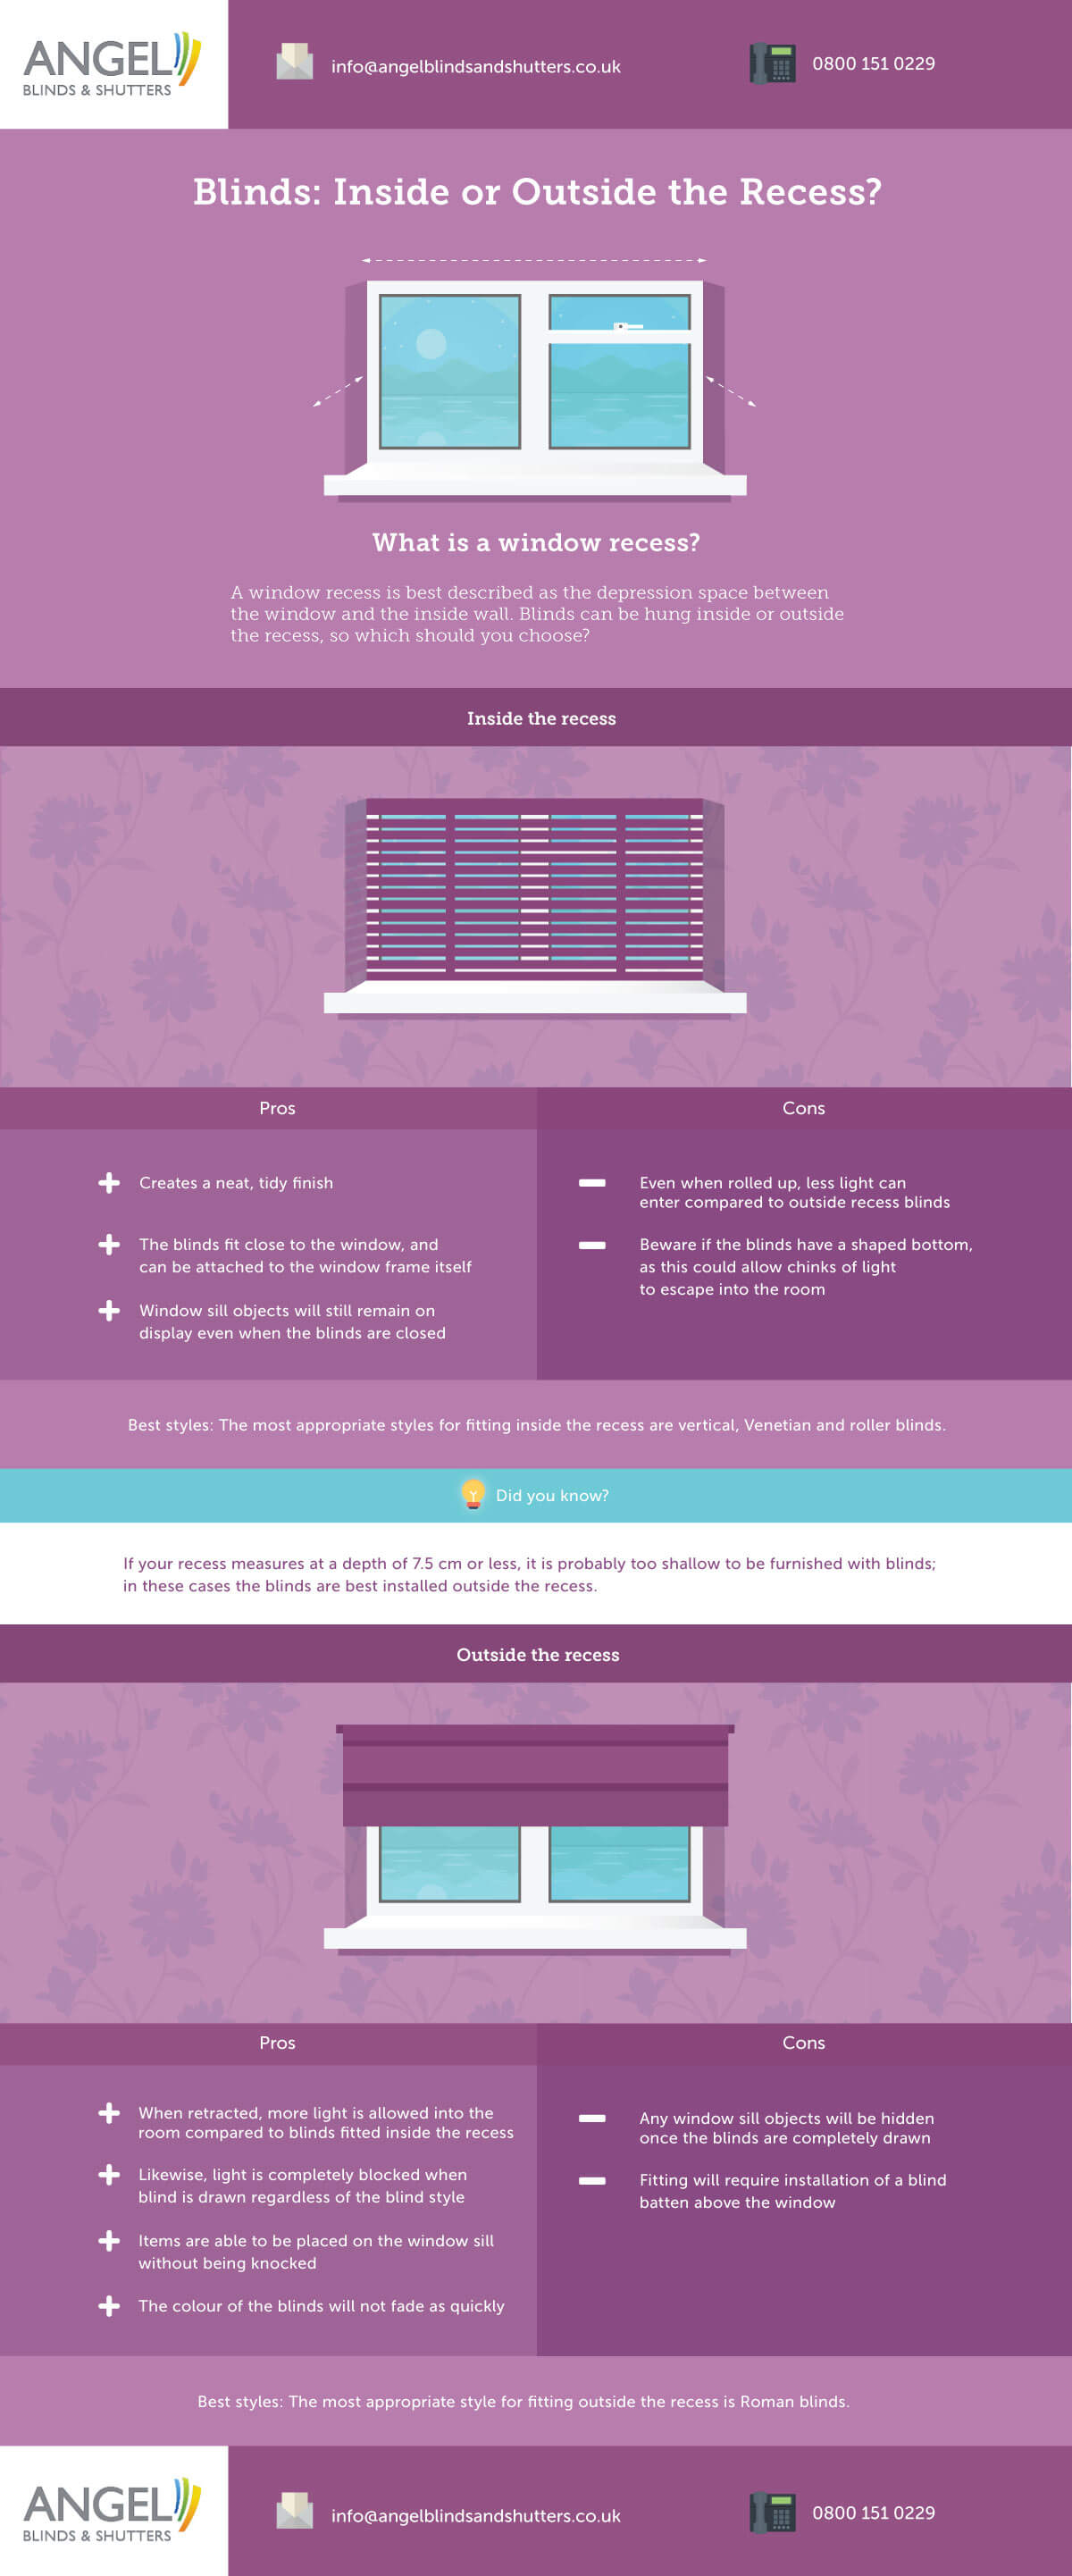 blinds inside our outside recess infographic